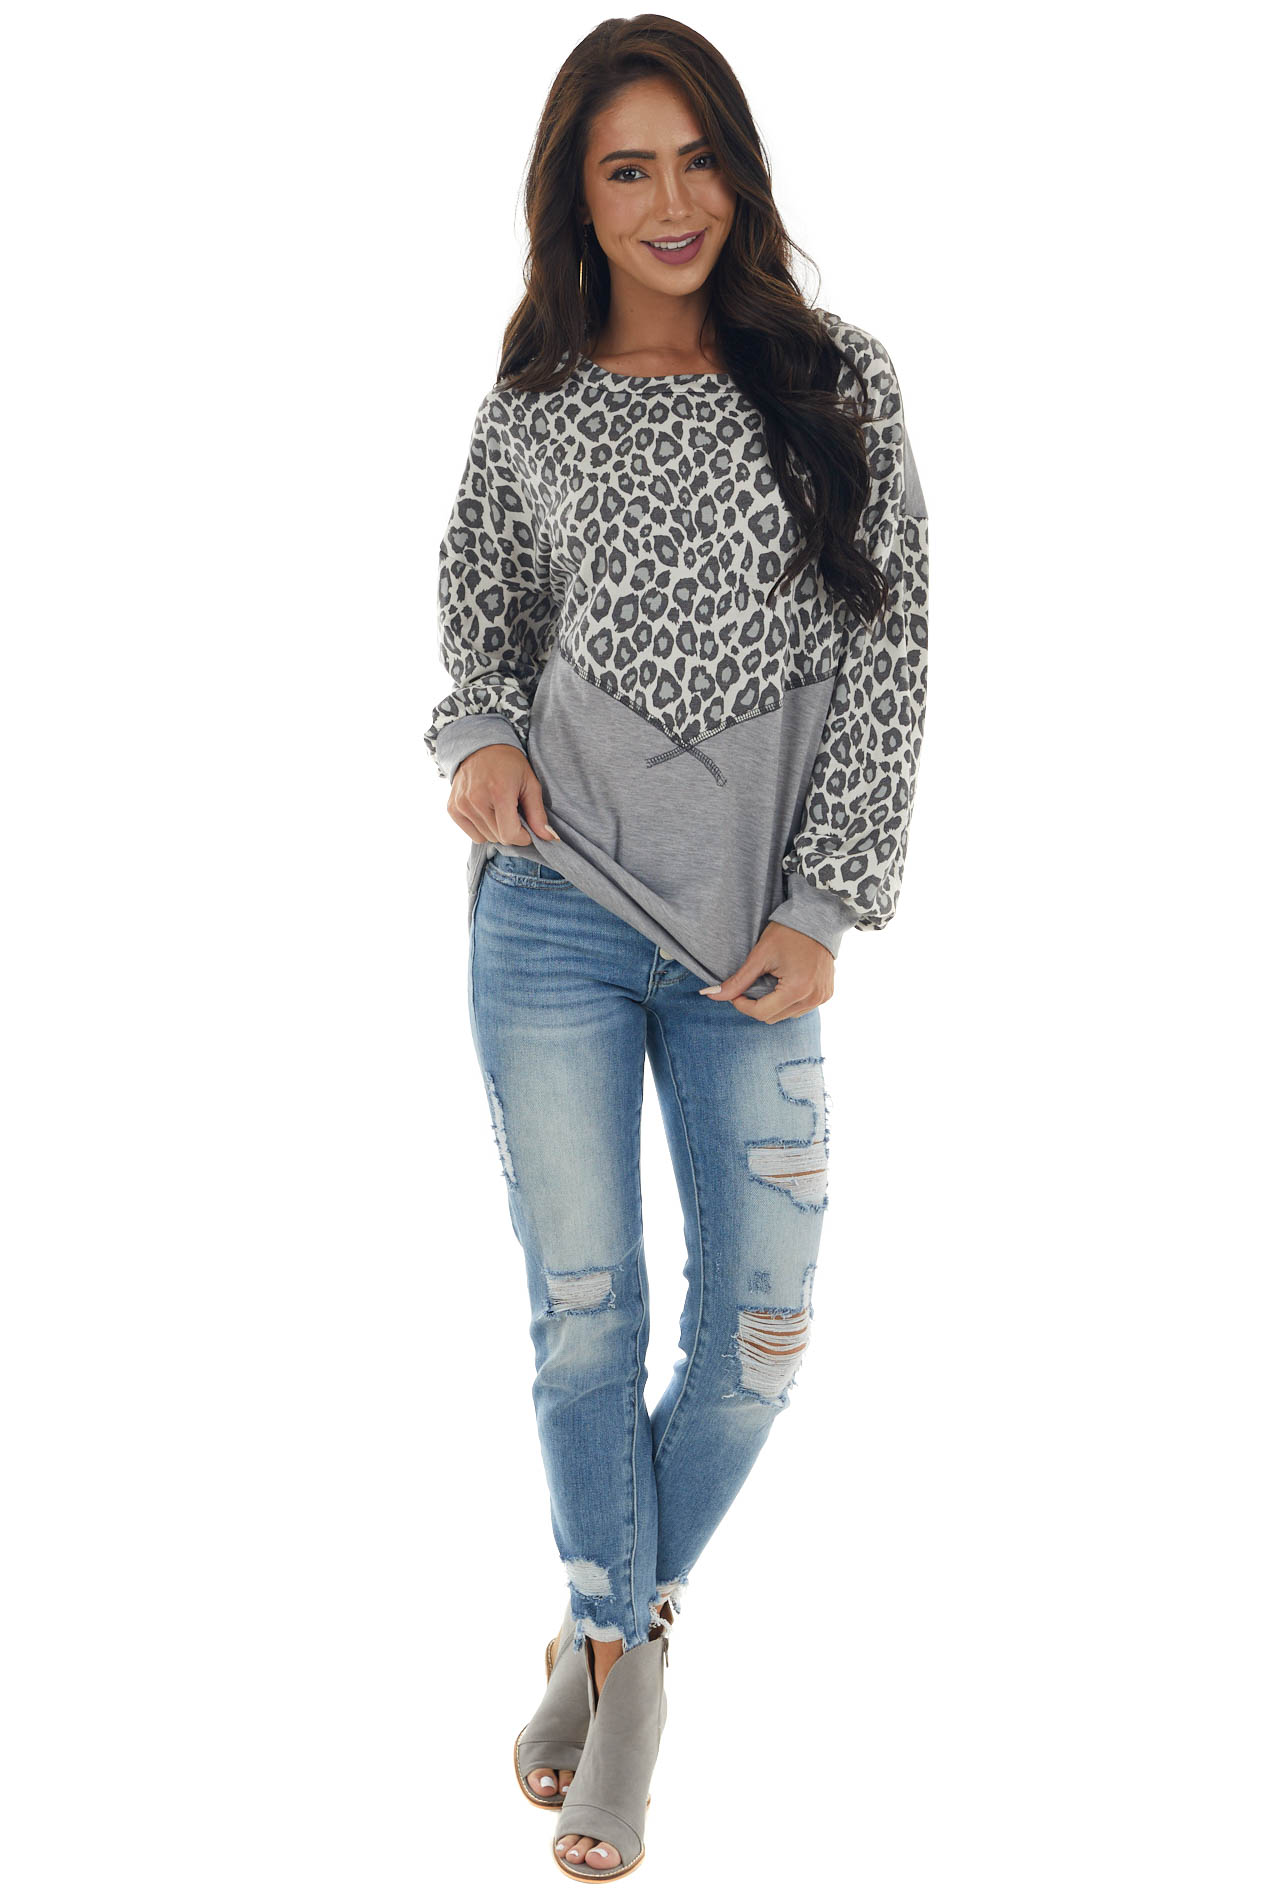 Dove Grey and Leopard Print Colorblock Top